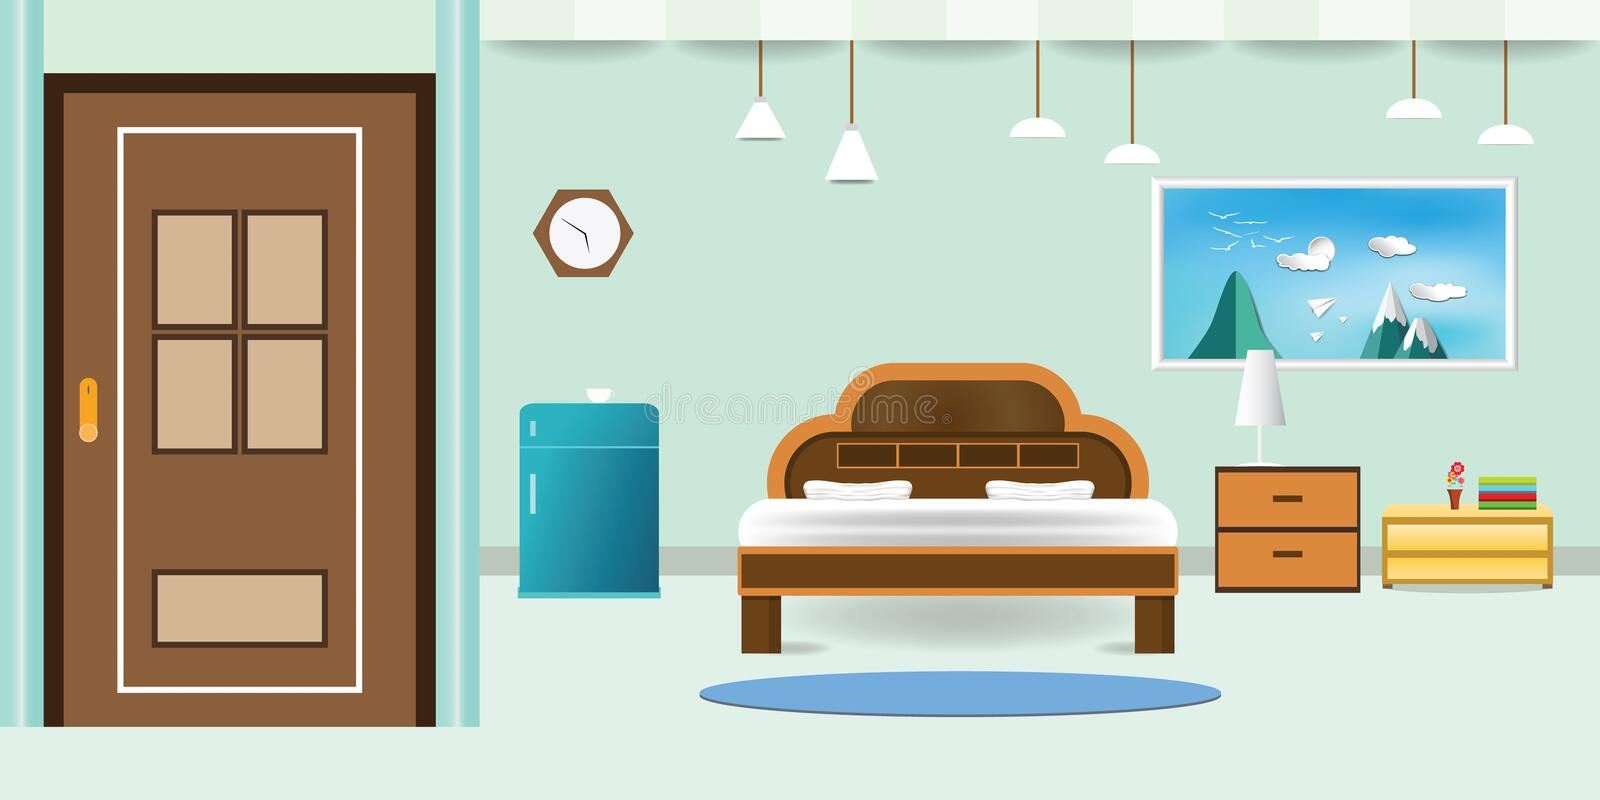 Bedroom interior flat design relax that have door refrigerator blue cabinet, picture frame sky cloud landscape on mountain, in wal stock illustration